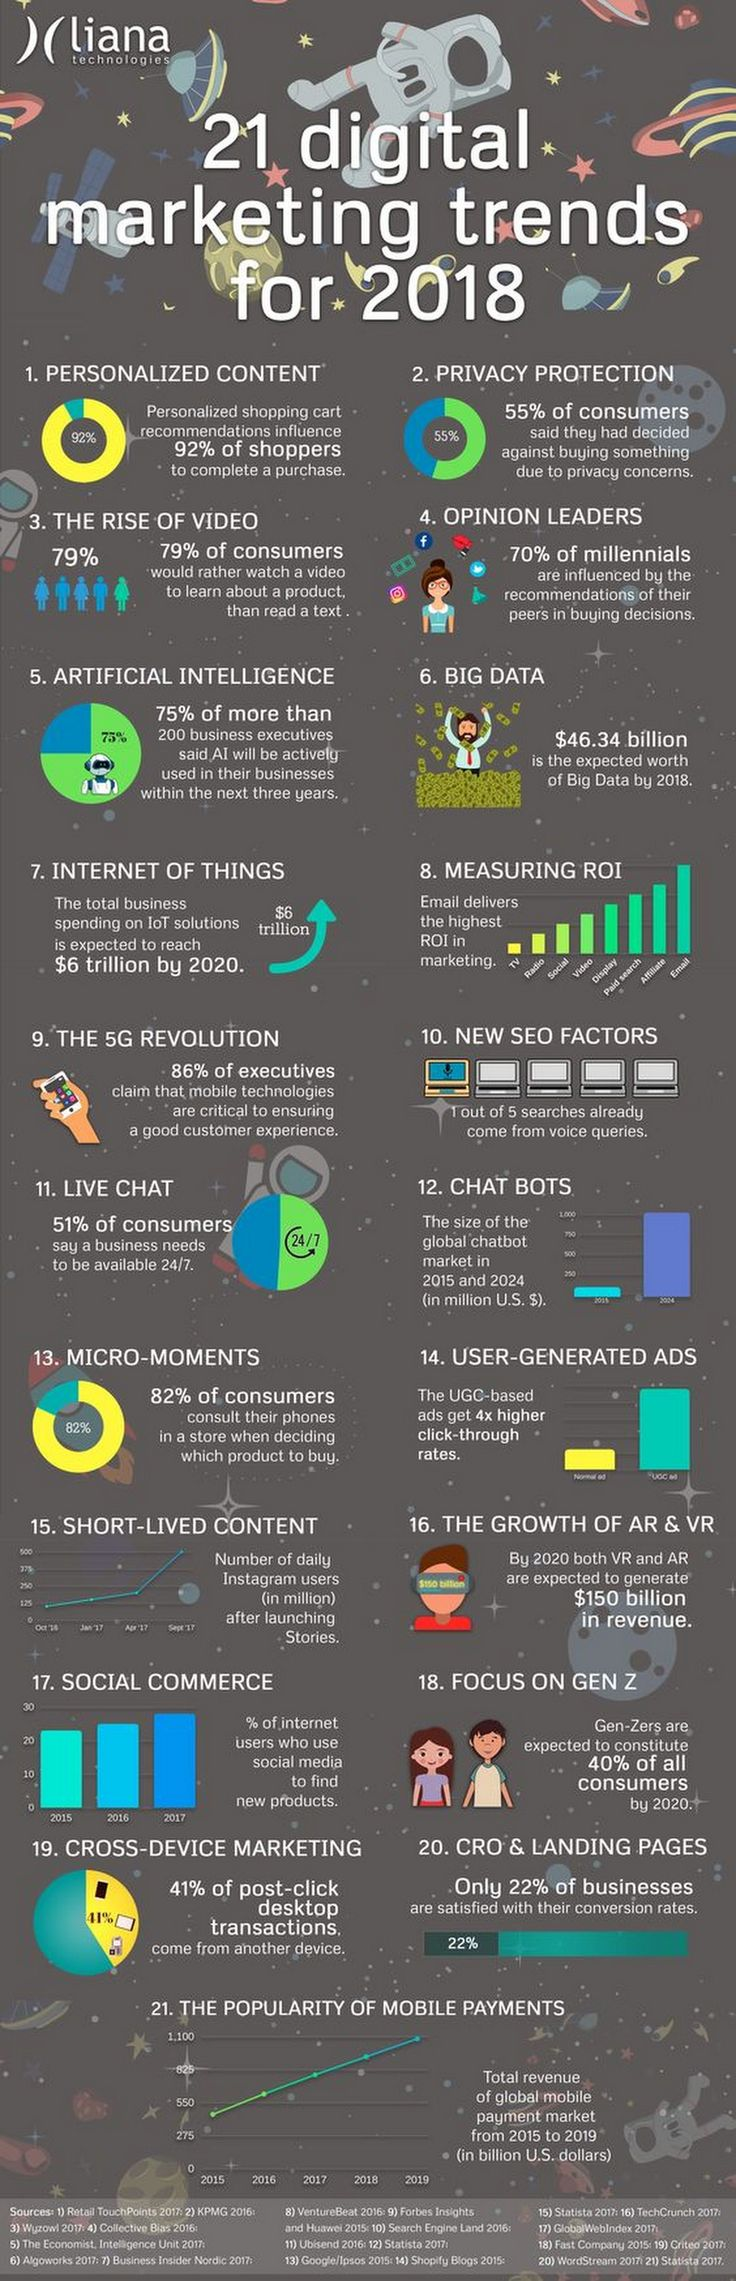 21 Digital Marketing Trends for 2018 - Infographic Download digital contents for your online marketing campaign. Only on Shutterstock - https://shutr.b... - infographicsdesignspro - Google+ #digitalmarketing2018